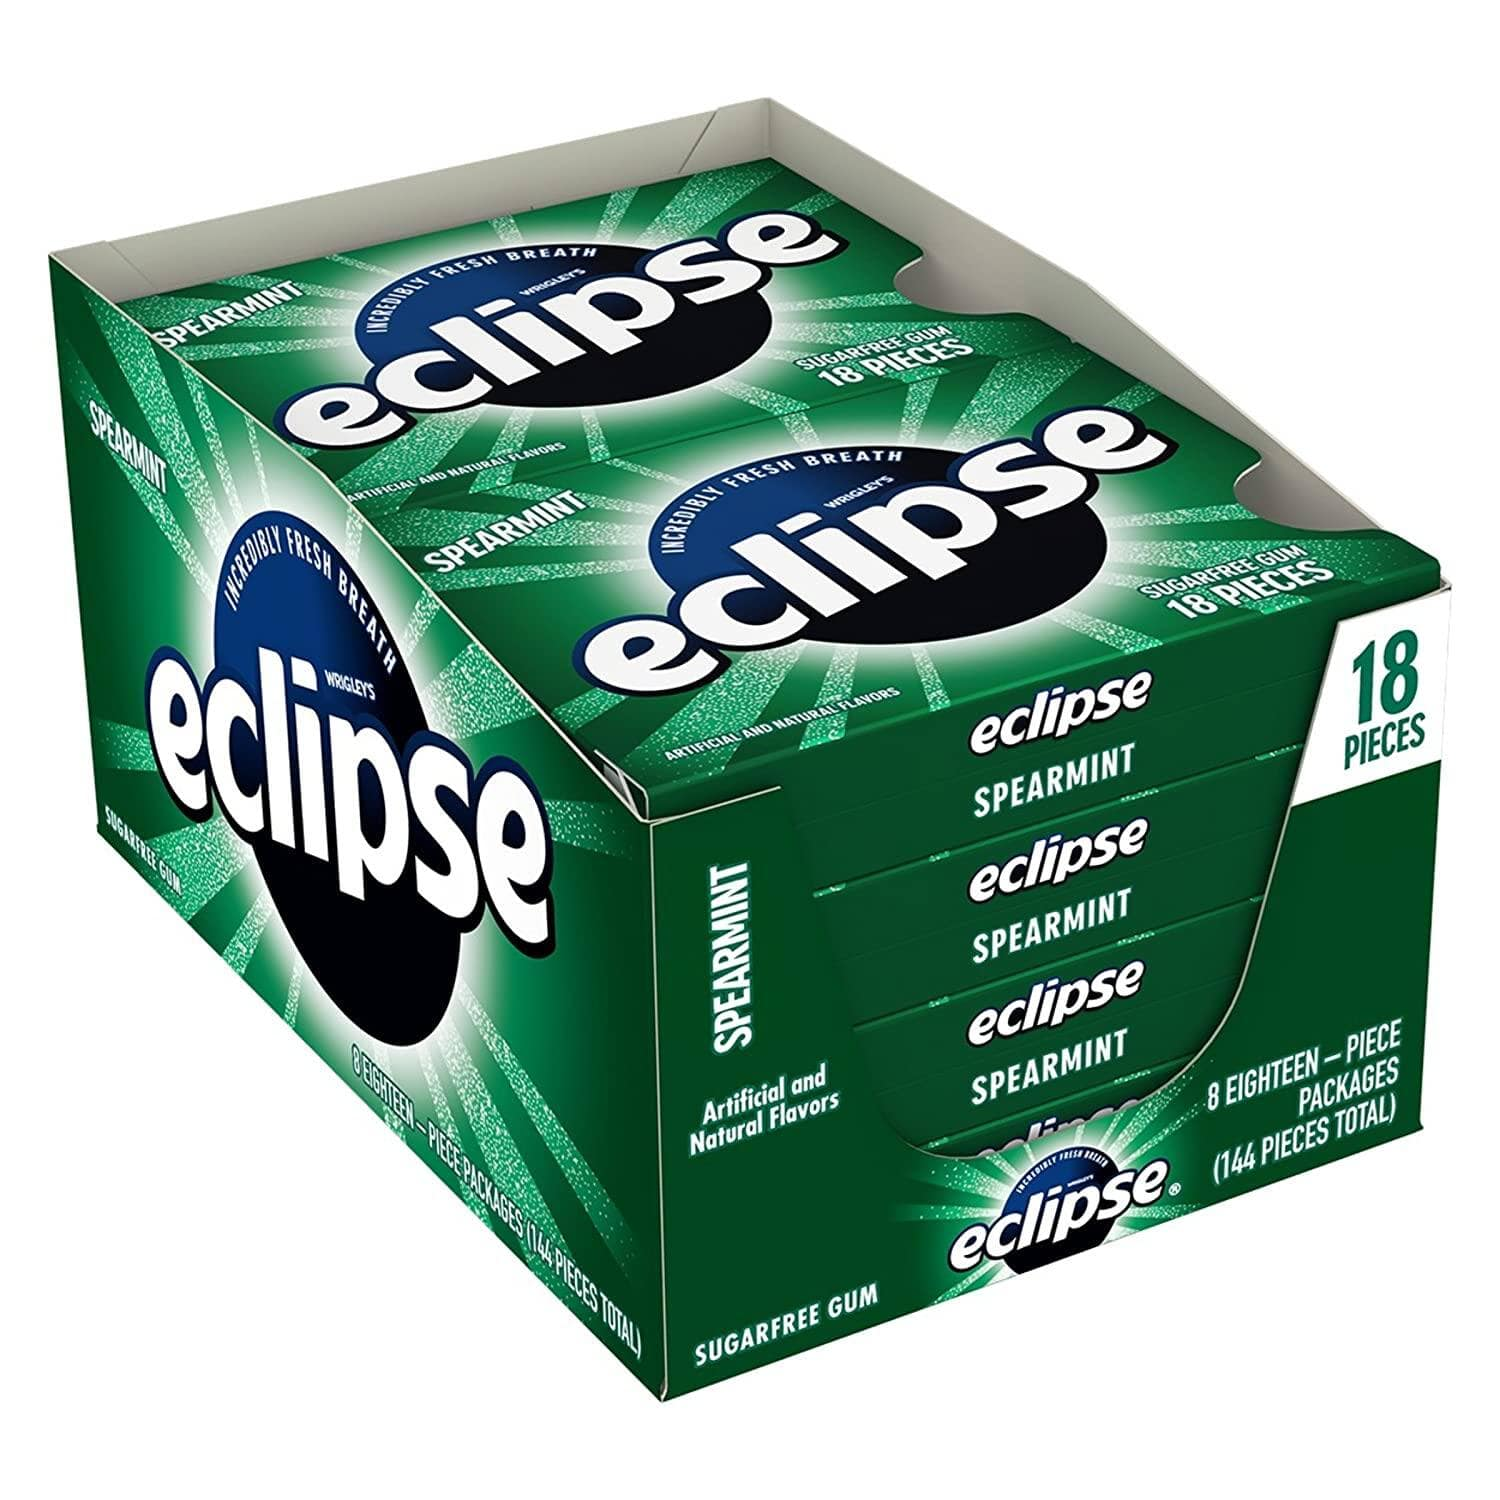 8-Pack 18-Piece Eclipse Sugar Free Gum (Spearmint) $4.80 w/ S&S + Free Shipping w/ Prime or on $25+